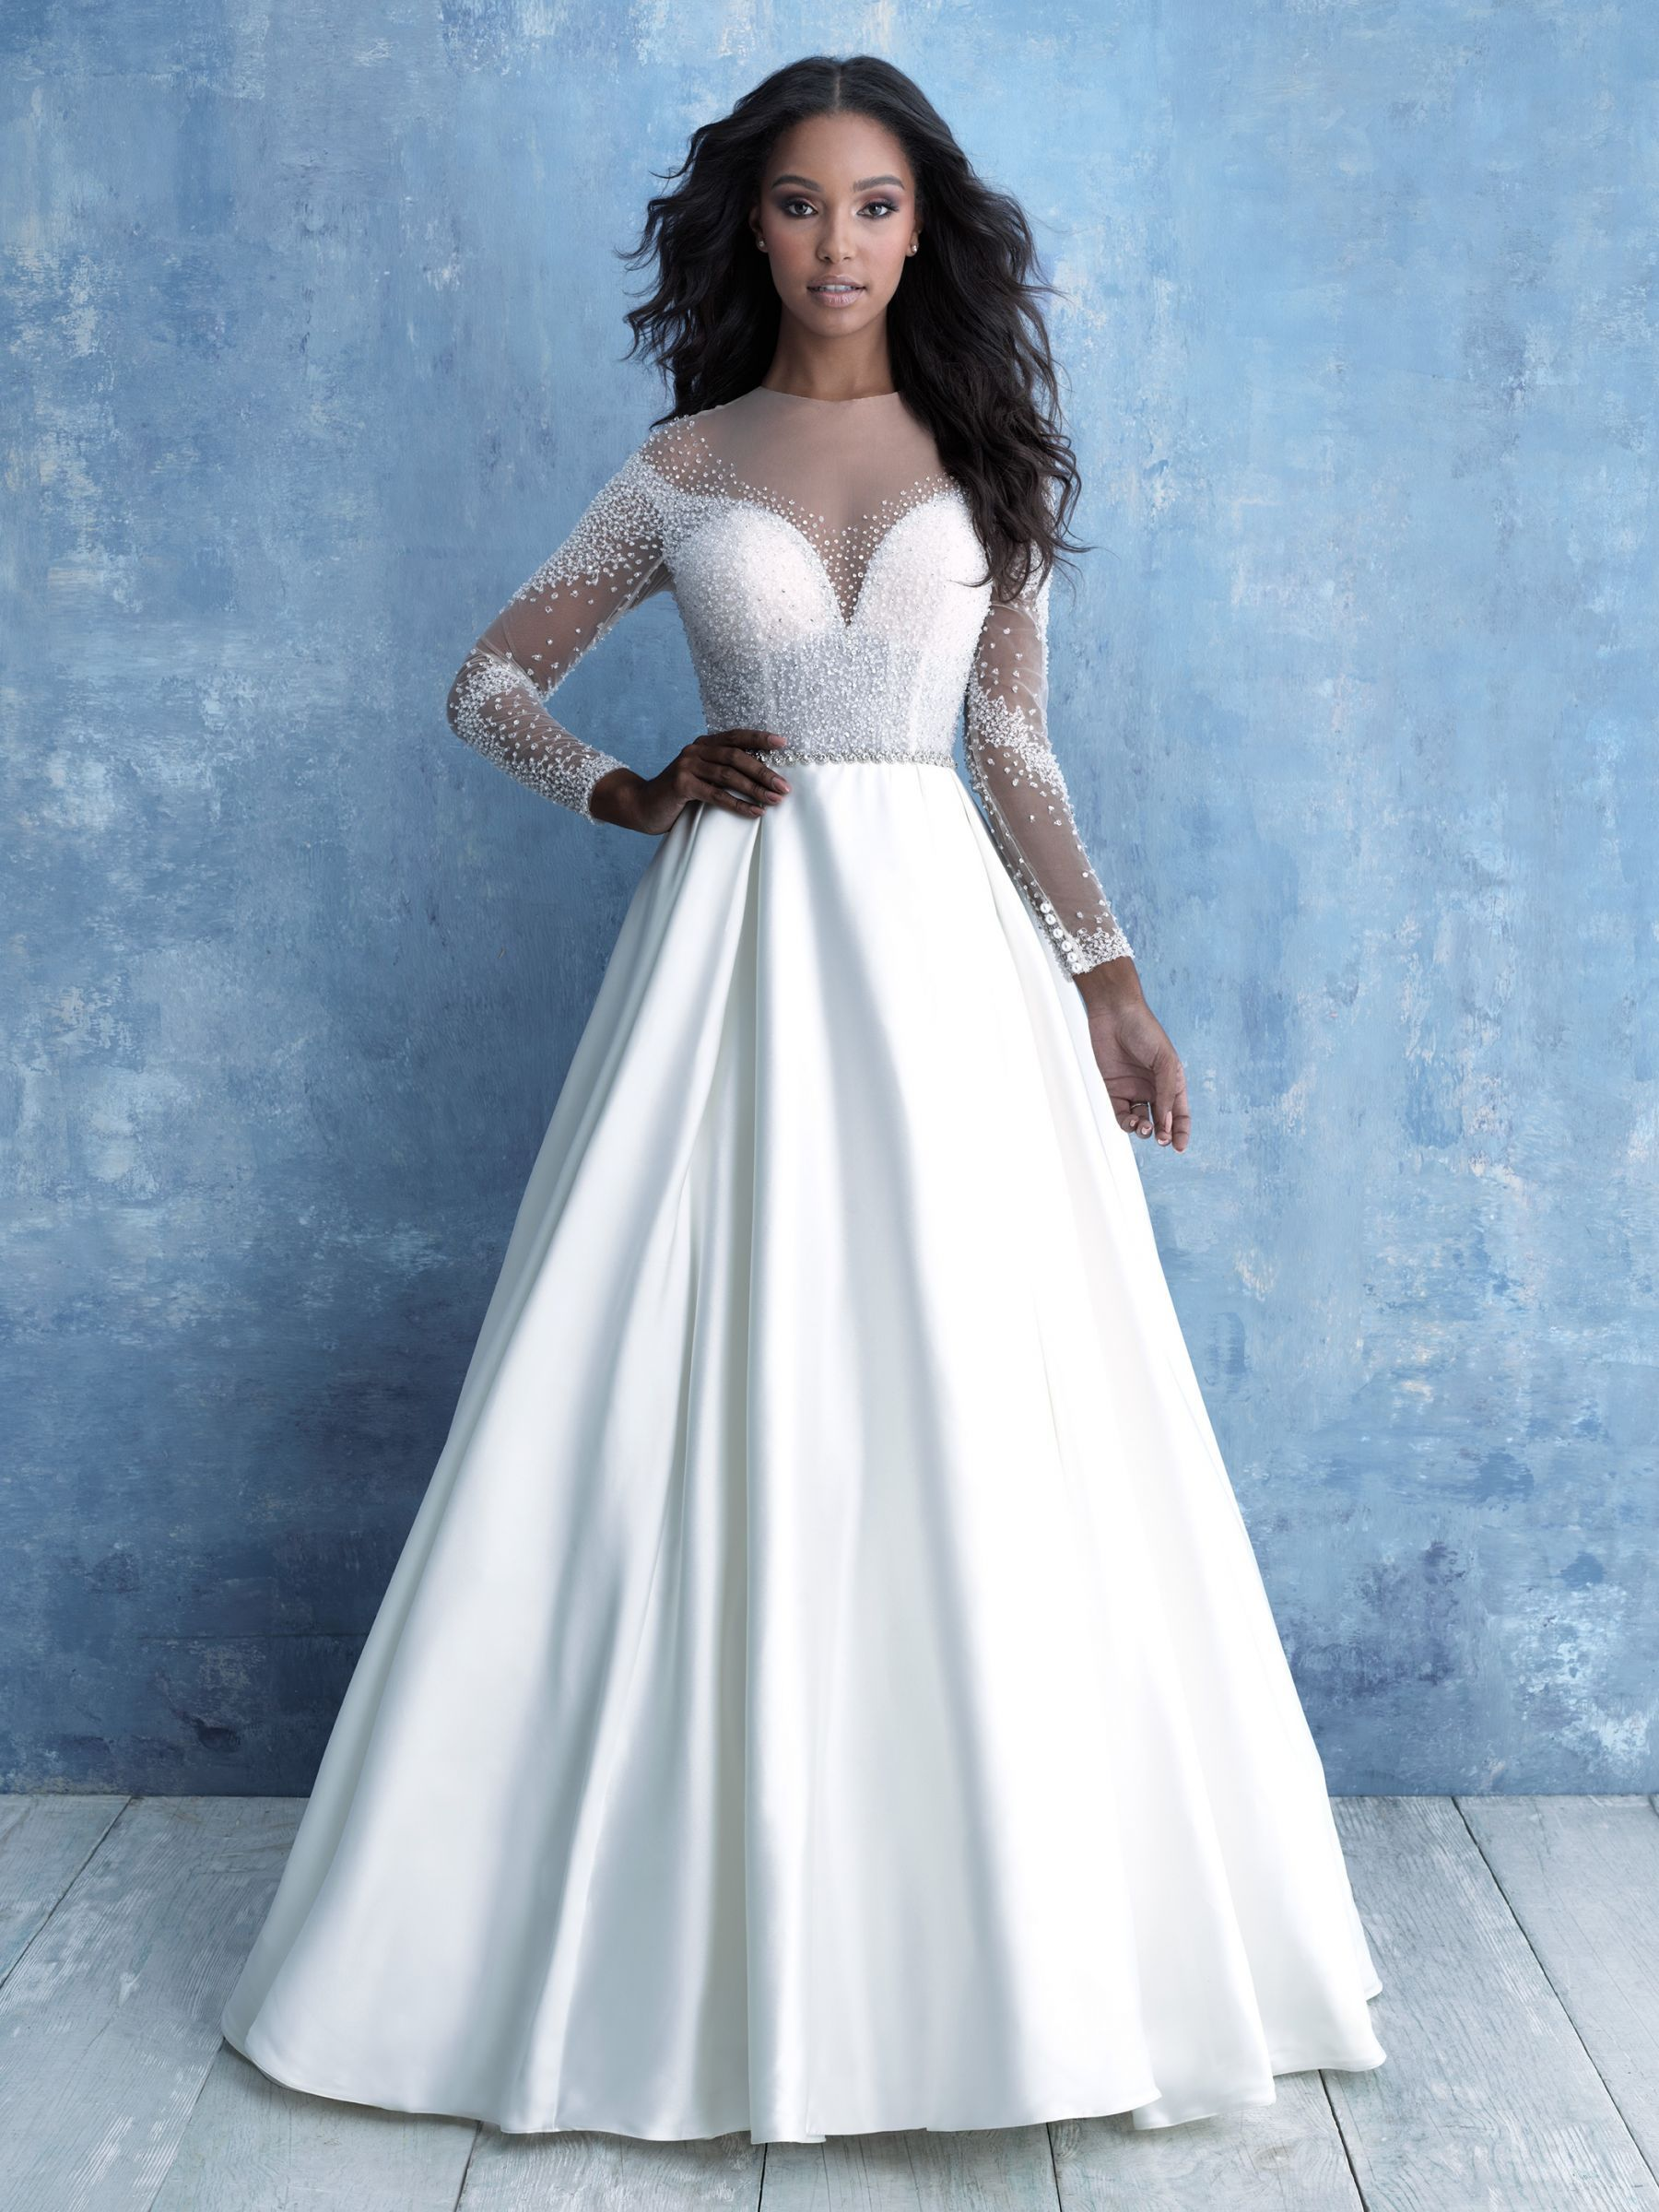 Pin by Rachell Wake on Tie the knot (2020) Allure bridal